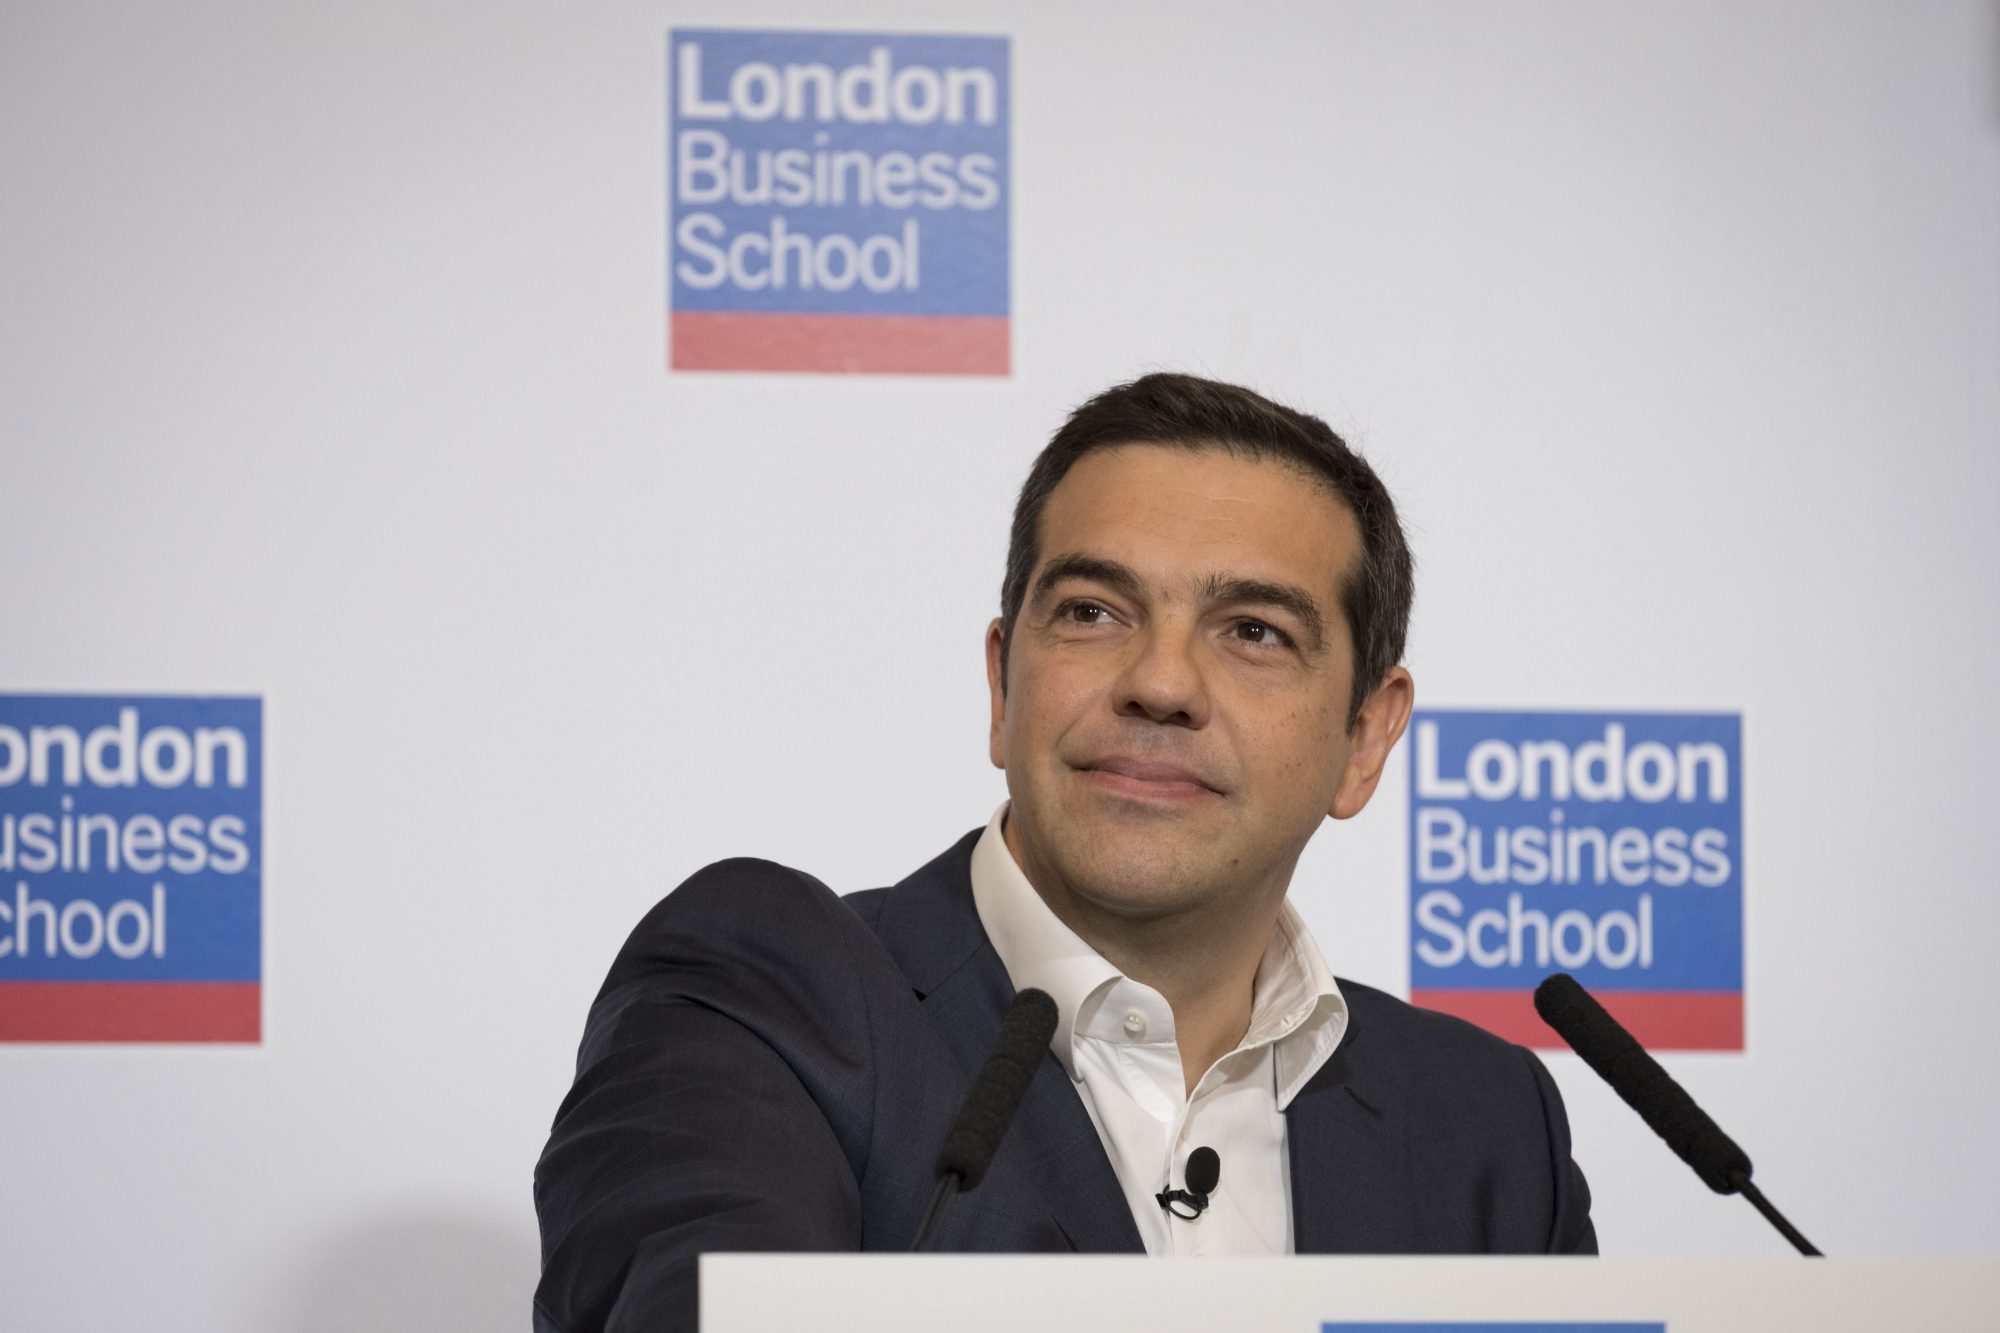 Tsipras: Greece is now a case study of economic recovery